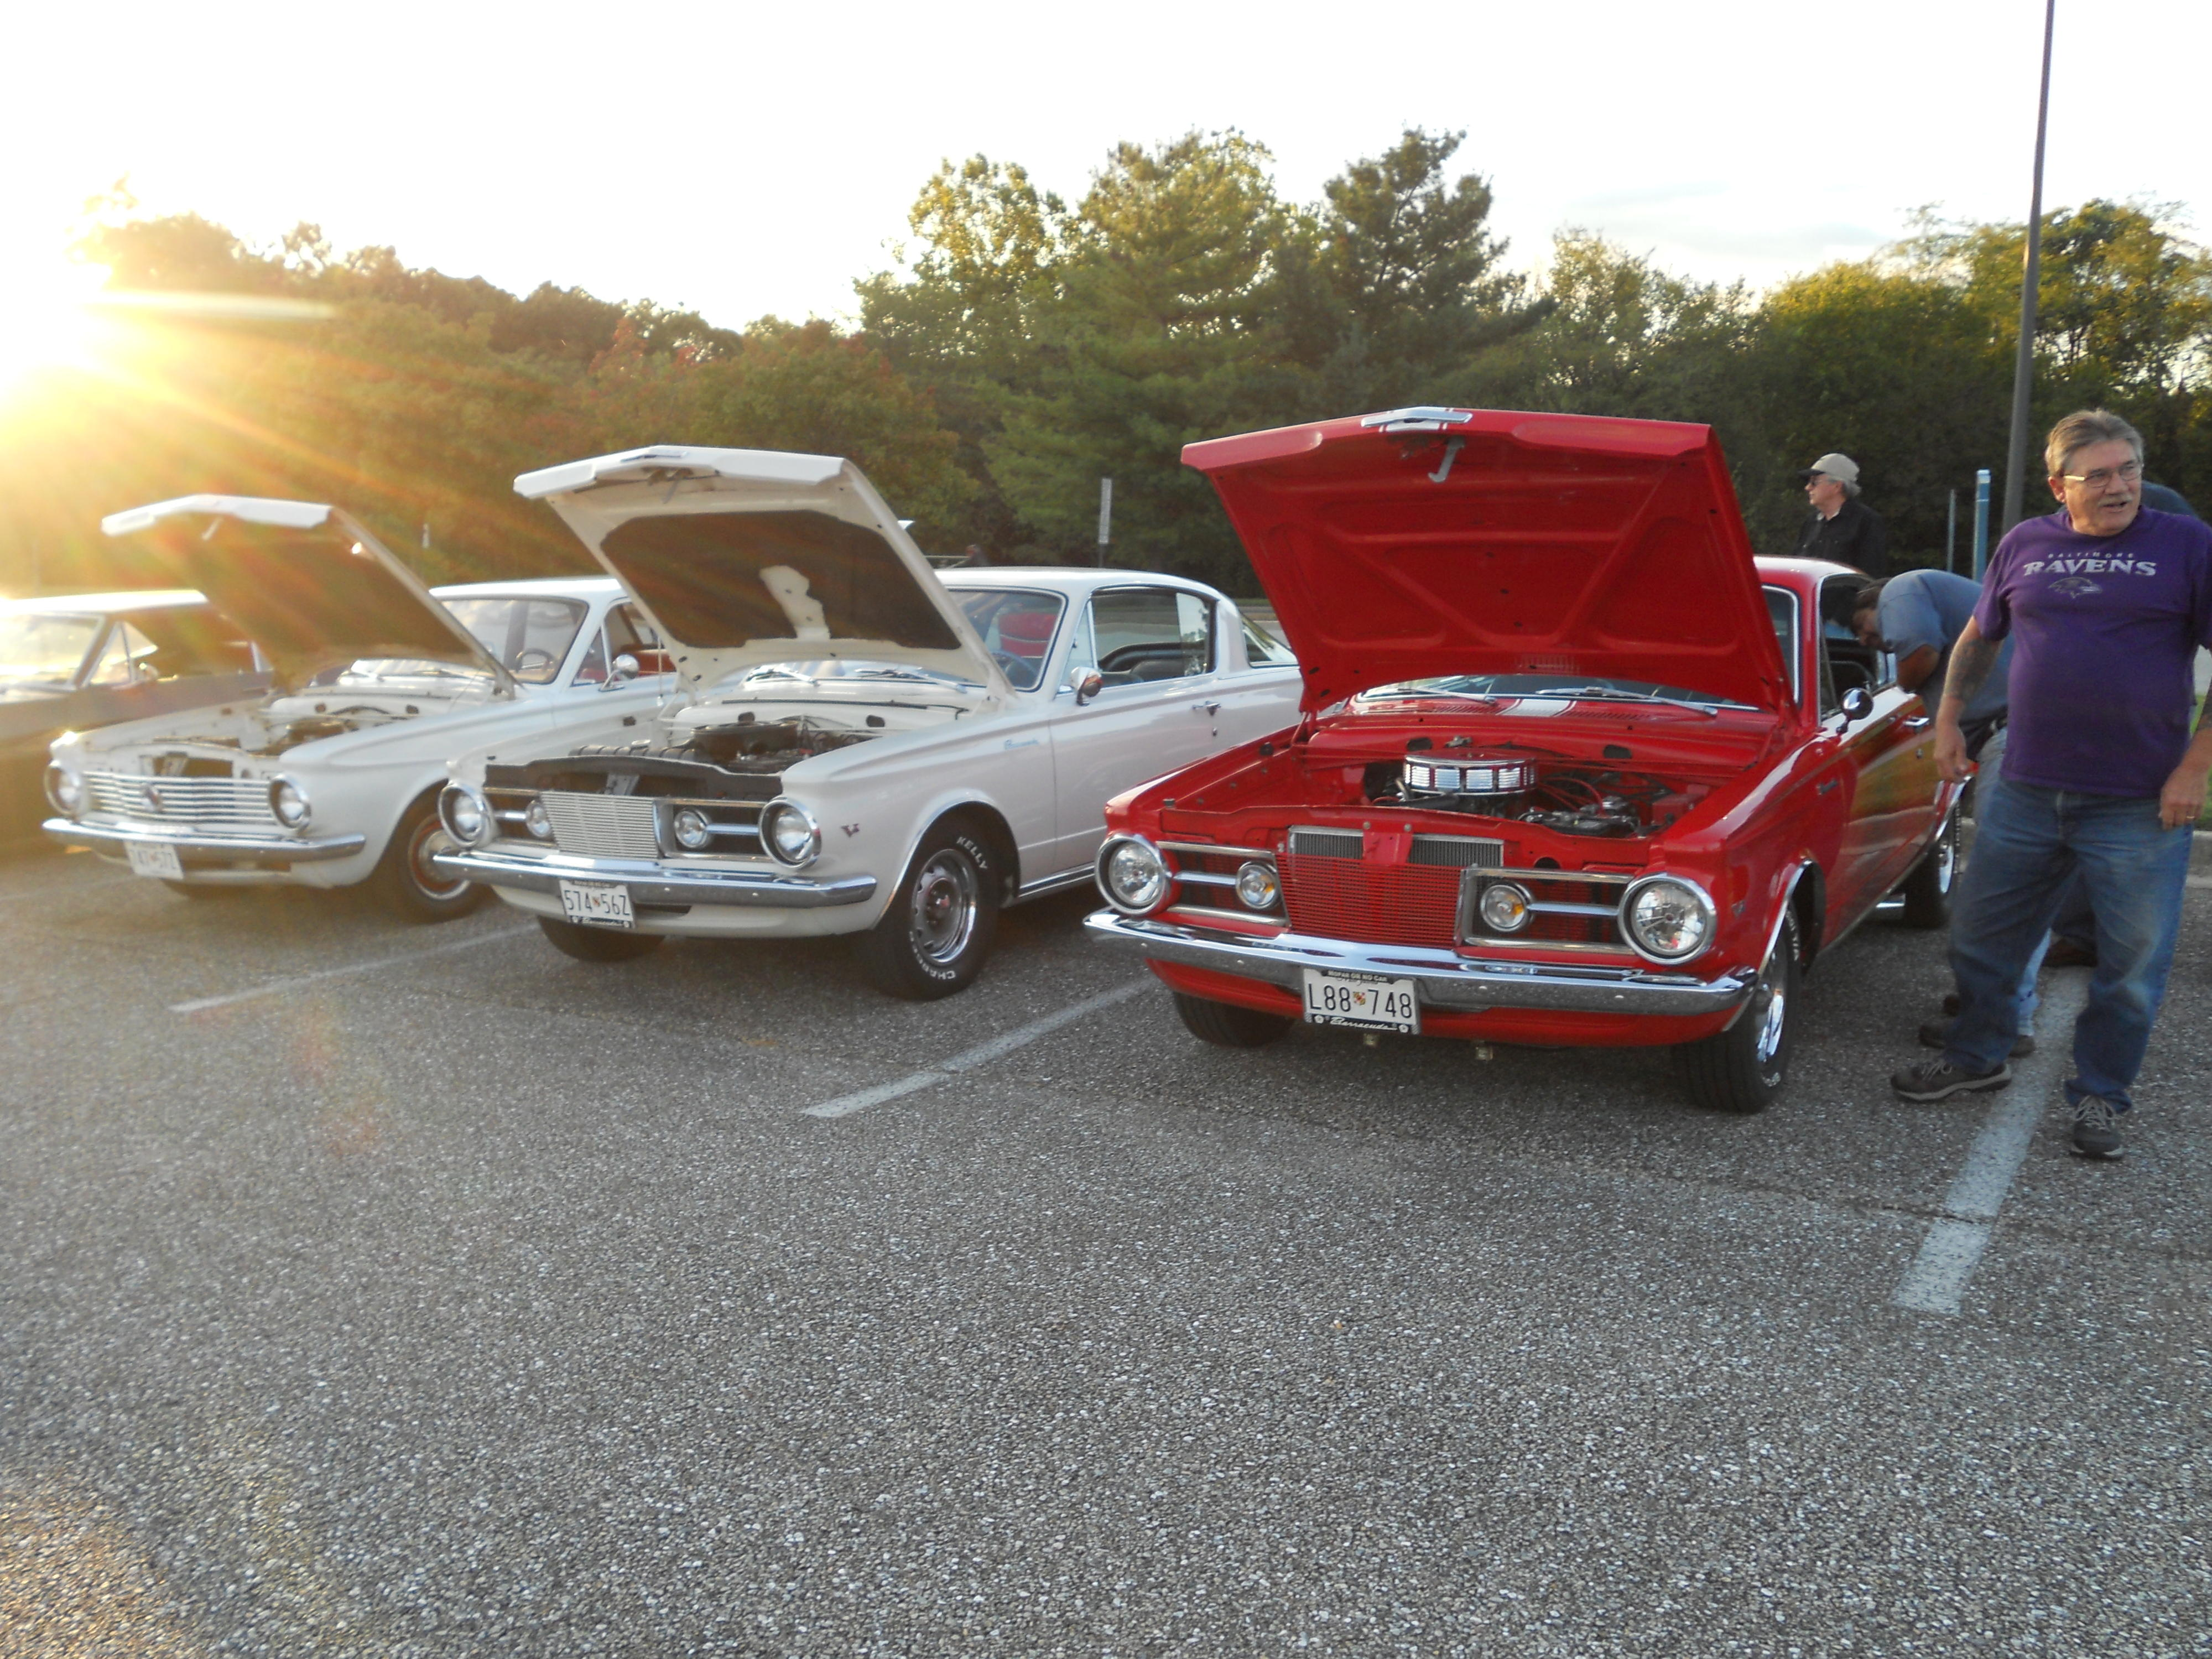 Click image for larger version  Name:9-28-13 car show 027.jpg Views:51 Size:1.37 MB ID:85242